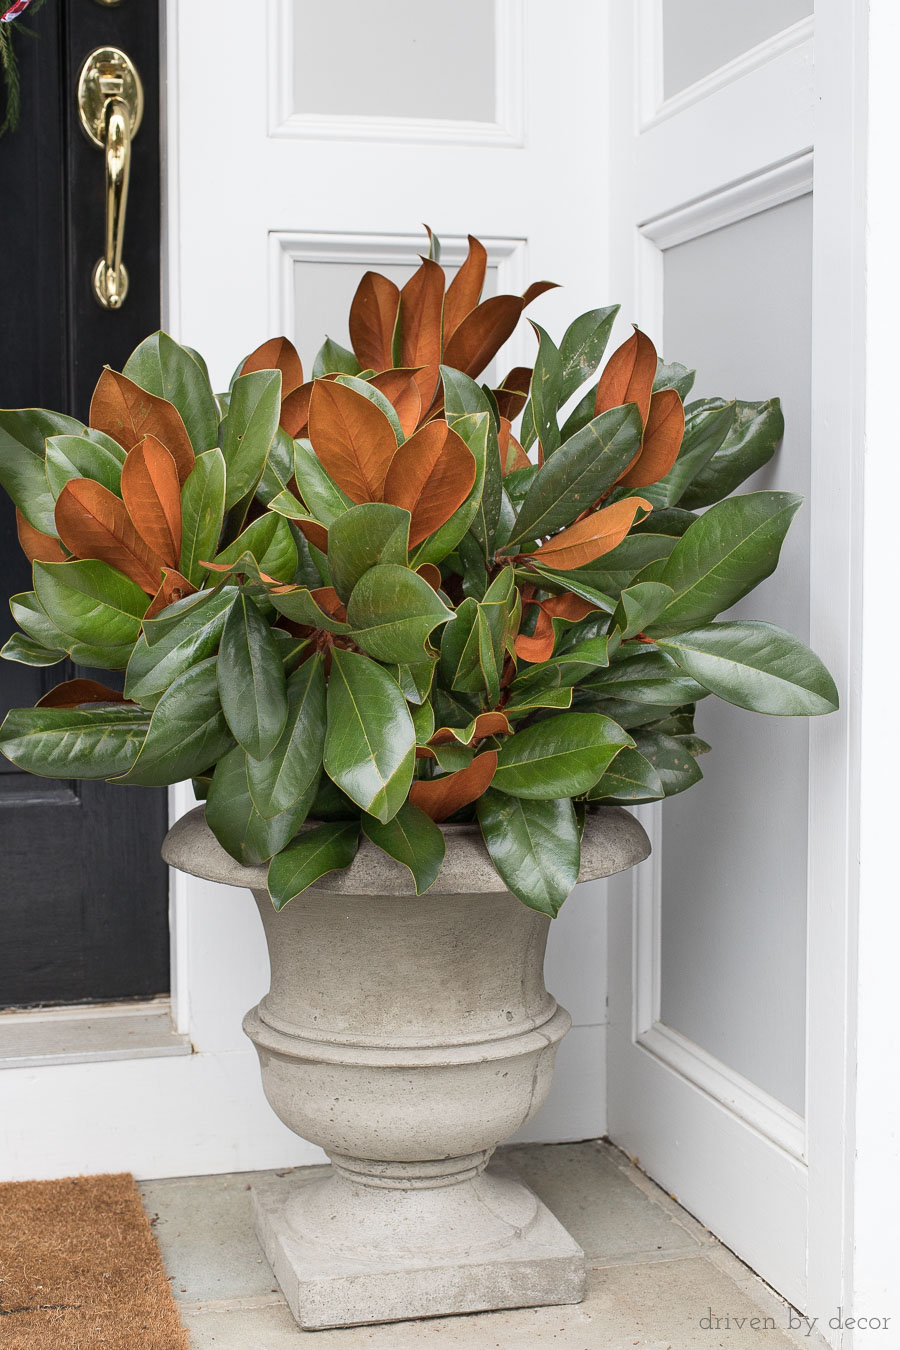 Planters filled with magnolia branches are a simple, beautiful way to decorate your front porch for Christmas!